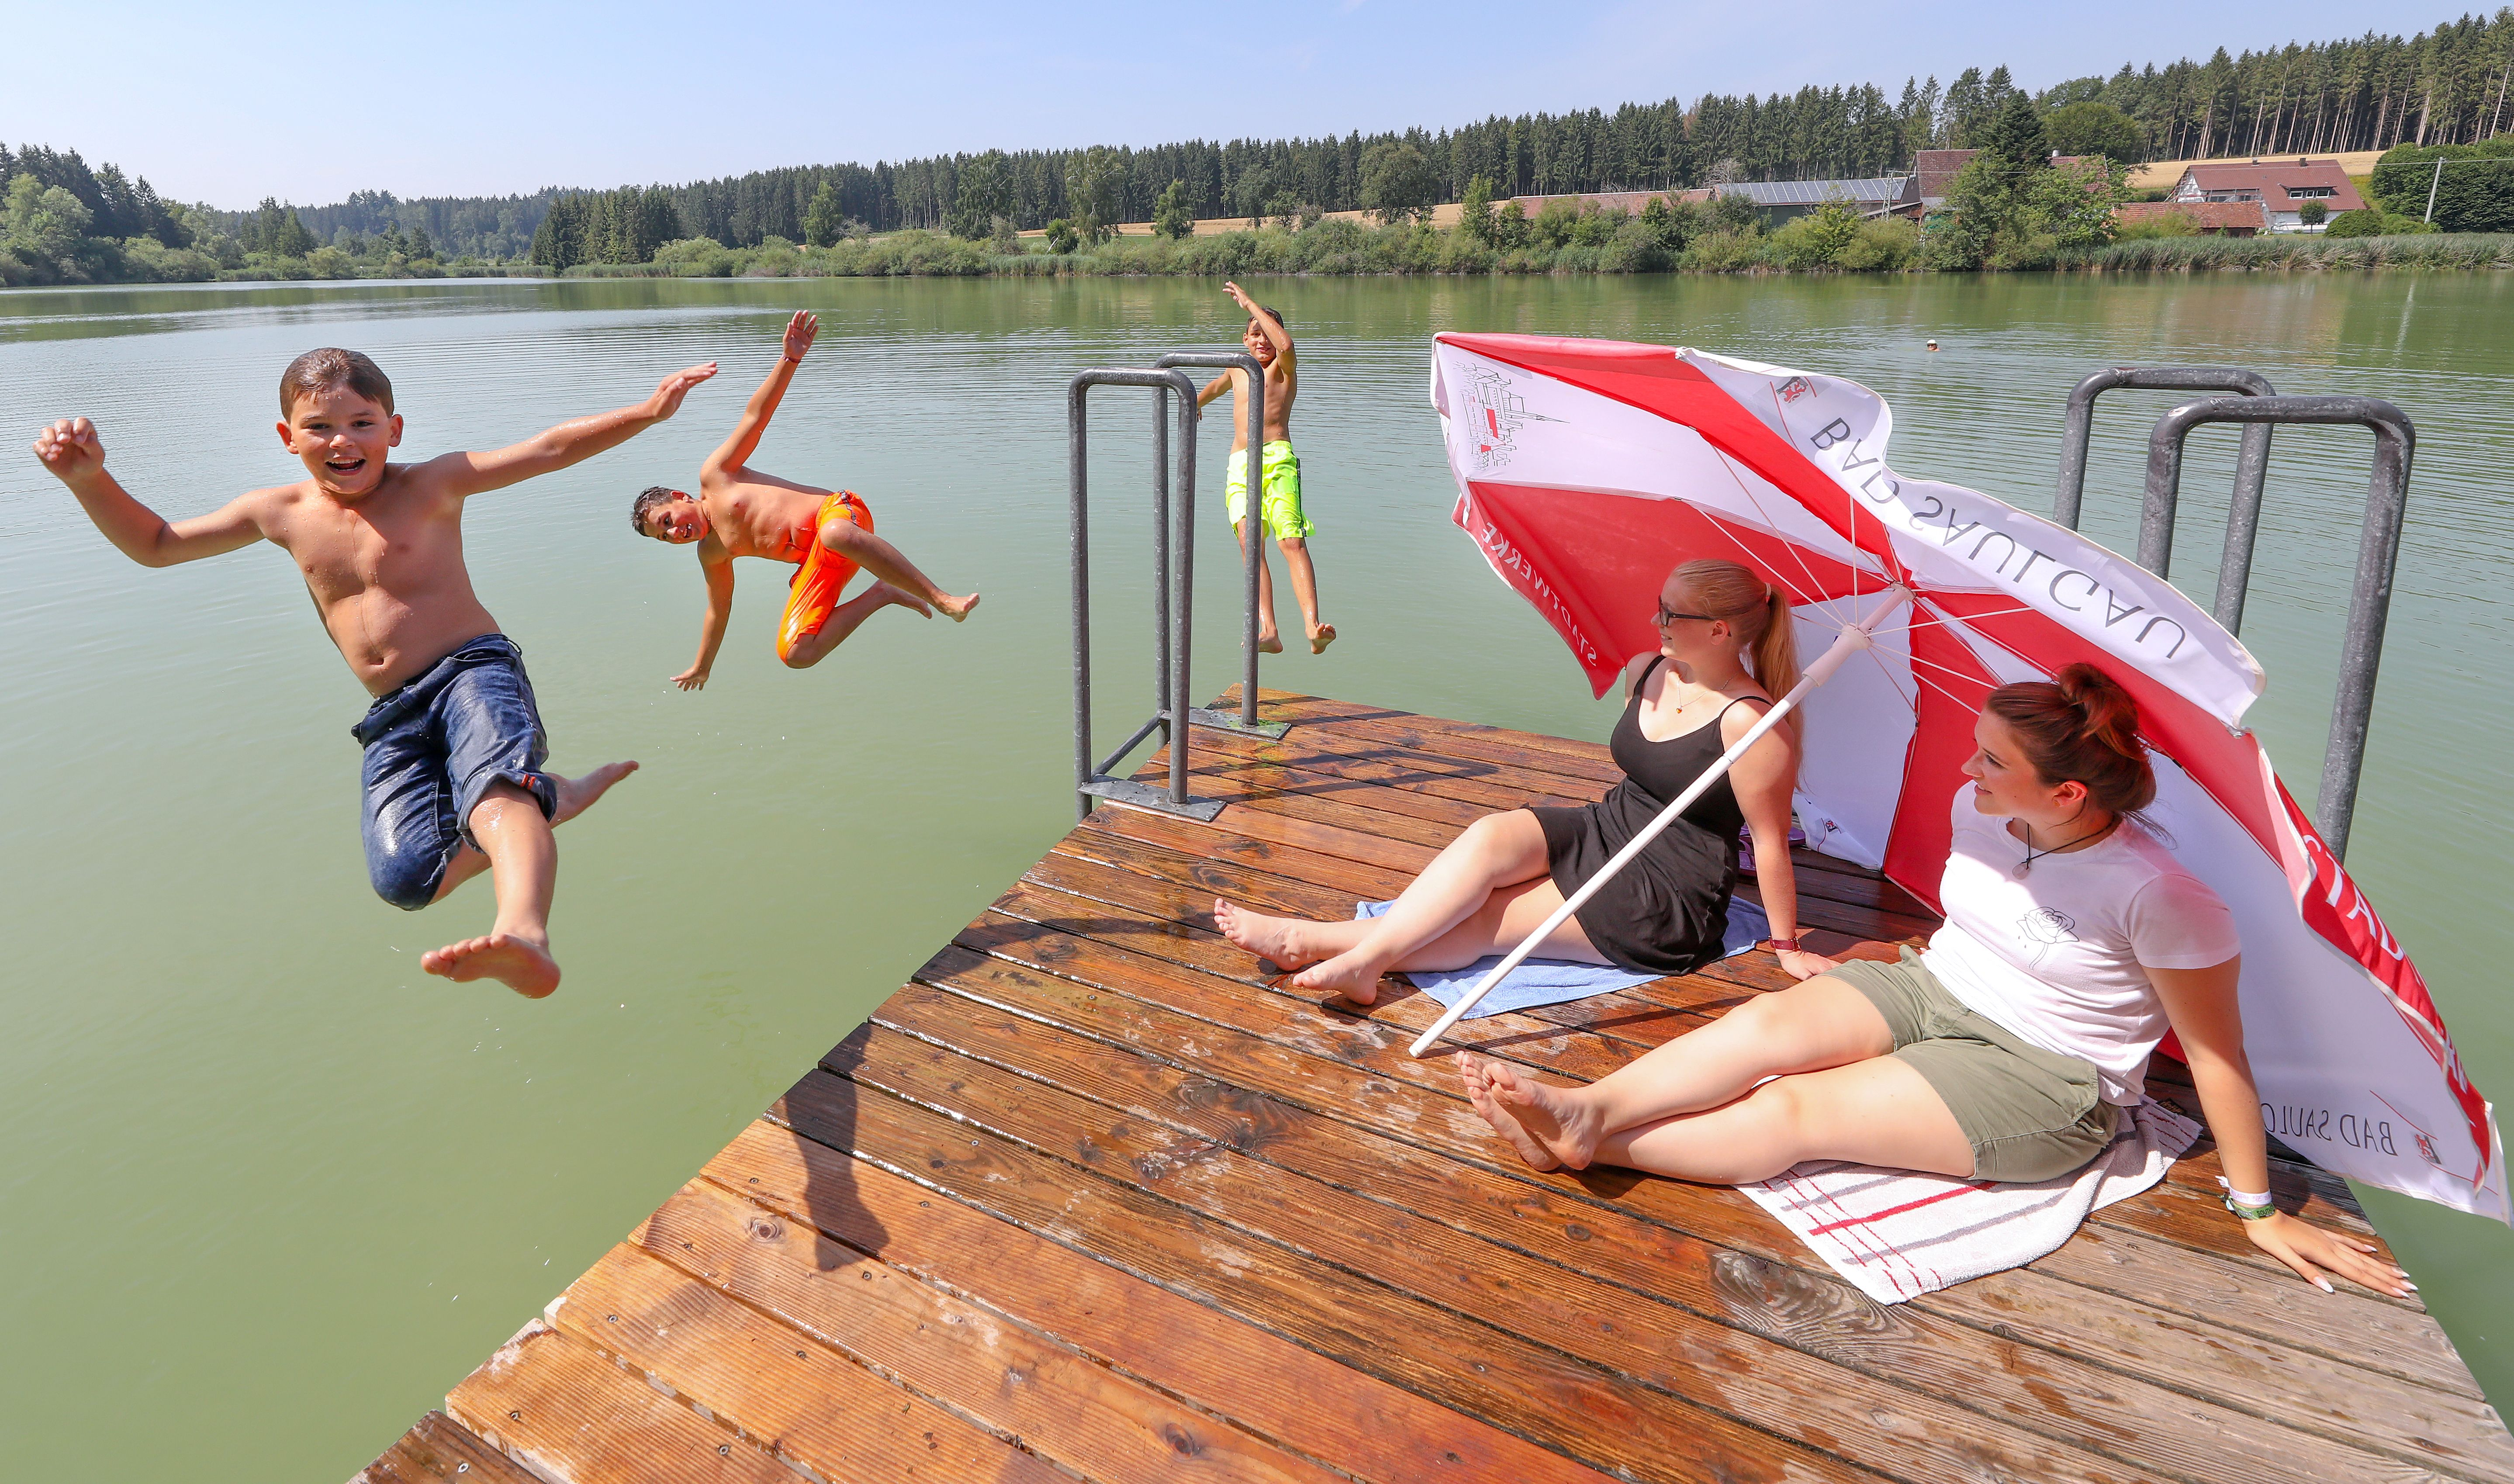 Two women sitting under parasols watch three boys jumping into a lake in Bad Saulgau, Germany on July 25, 2019.